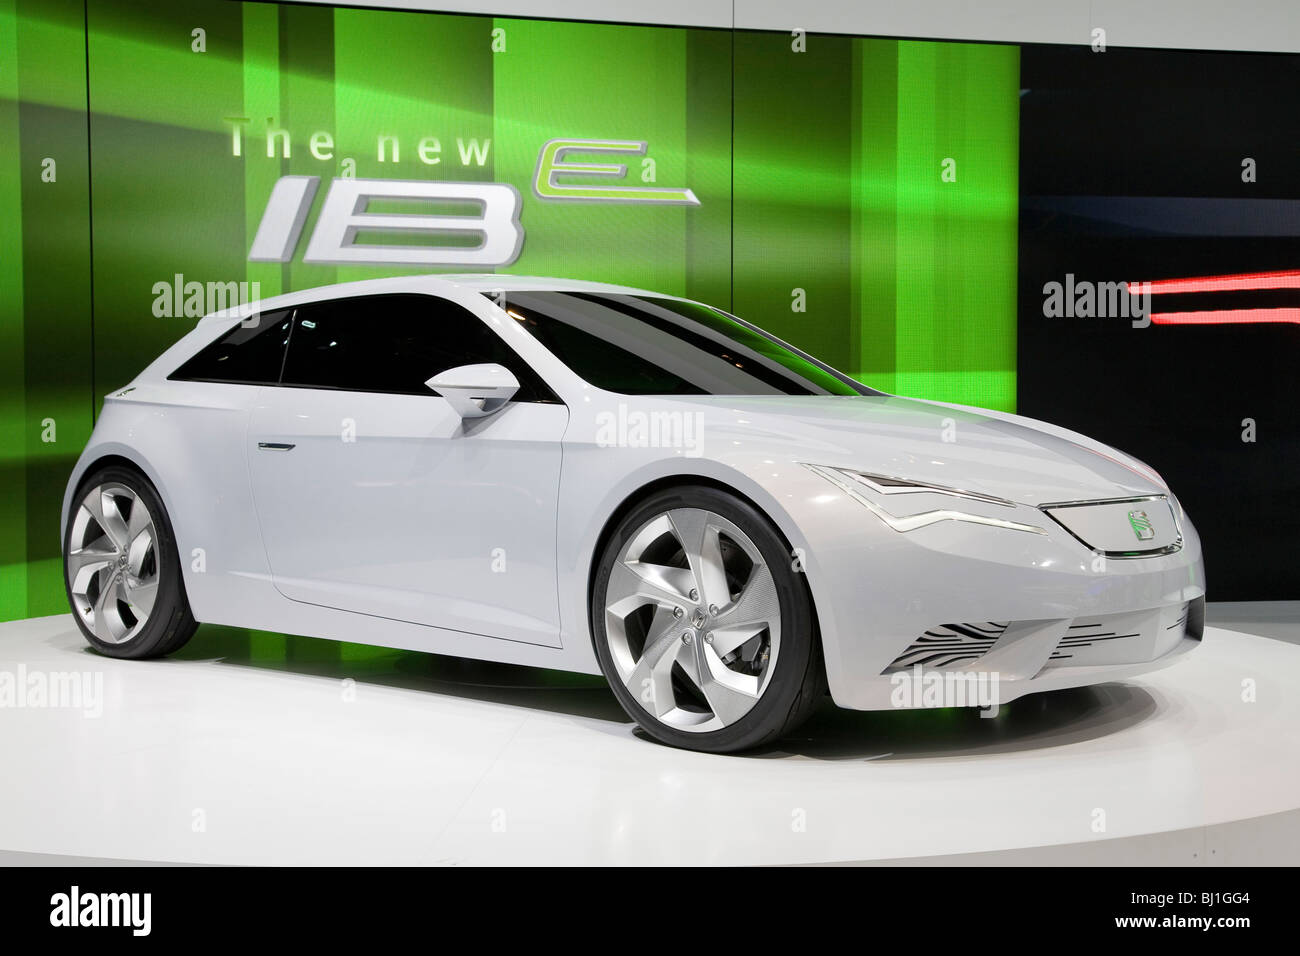 Seat IBe electric concept car at a motor show - Stock Image